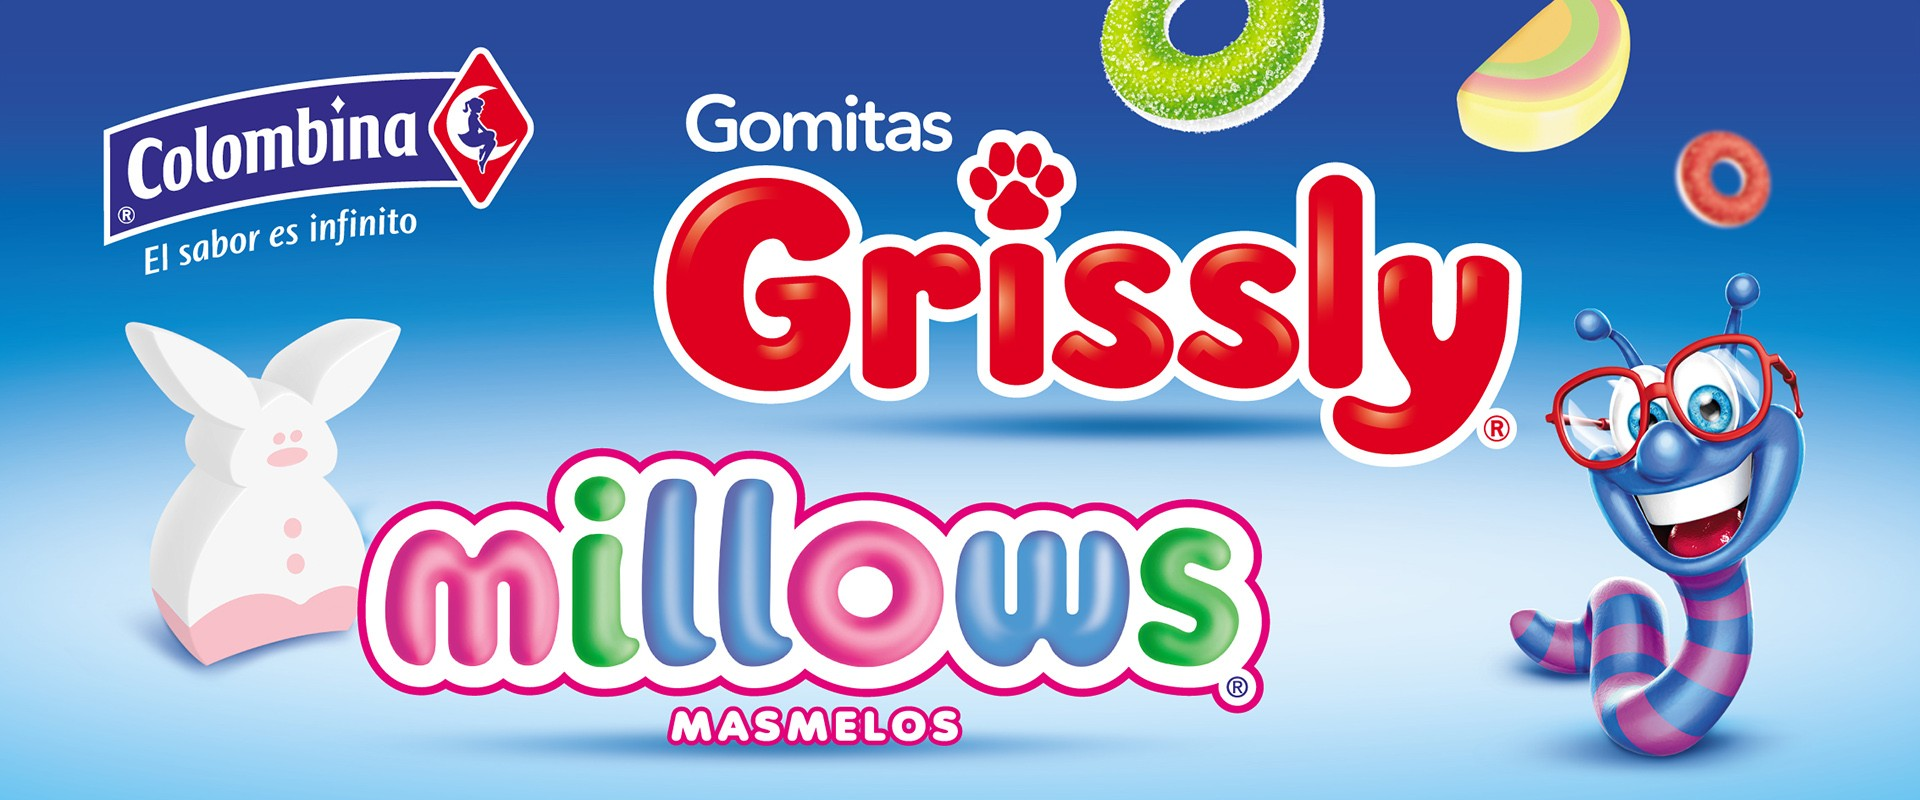 Millows Grissly